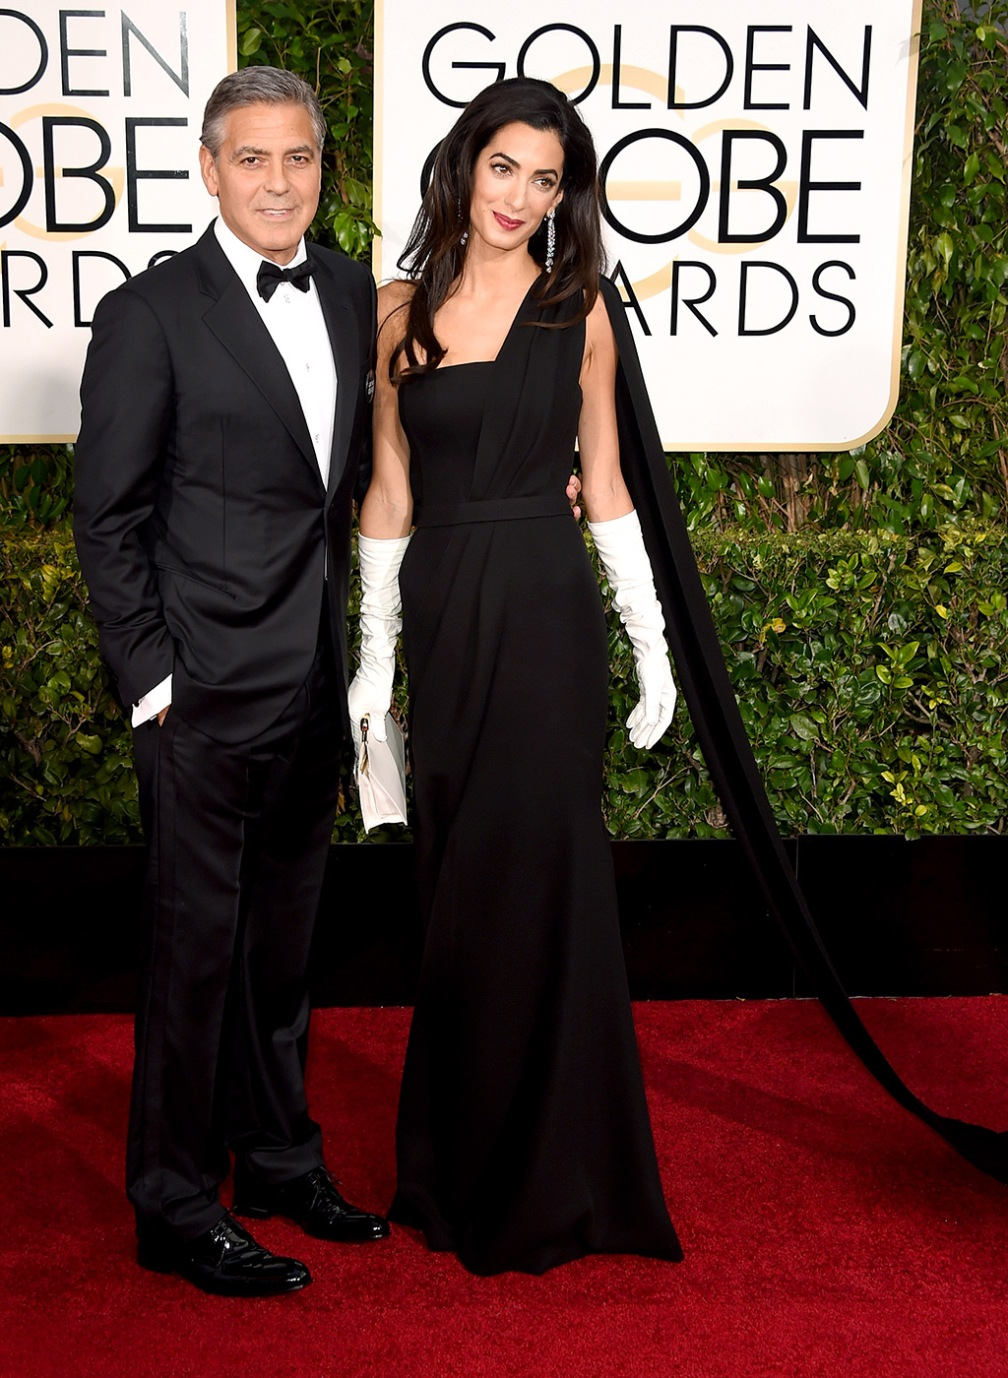 George and Amal Clooney - Amal, my favorite girl in the world, I know you can use about 100 more pounds as we speak. But you and your man owned it, I mean OWNED IT. I mean I was dying listening to George pay a tribute to you during his speech! *le sigh* umm move aside Brangelina!